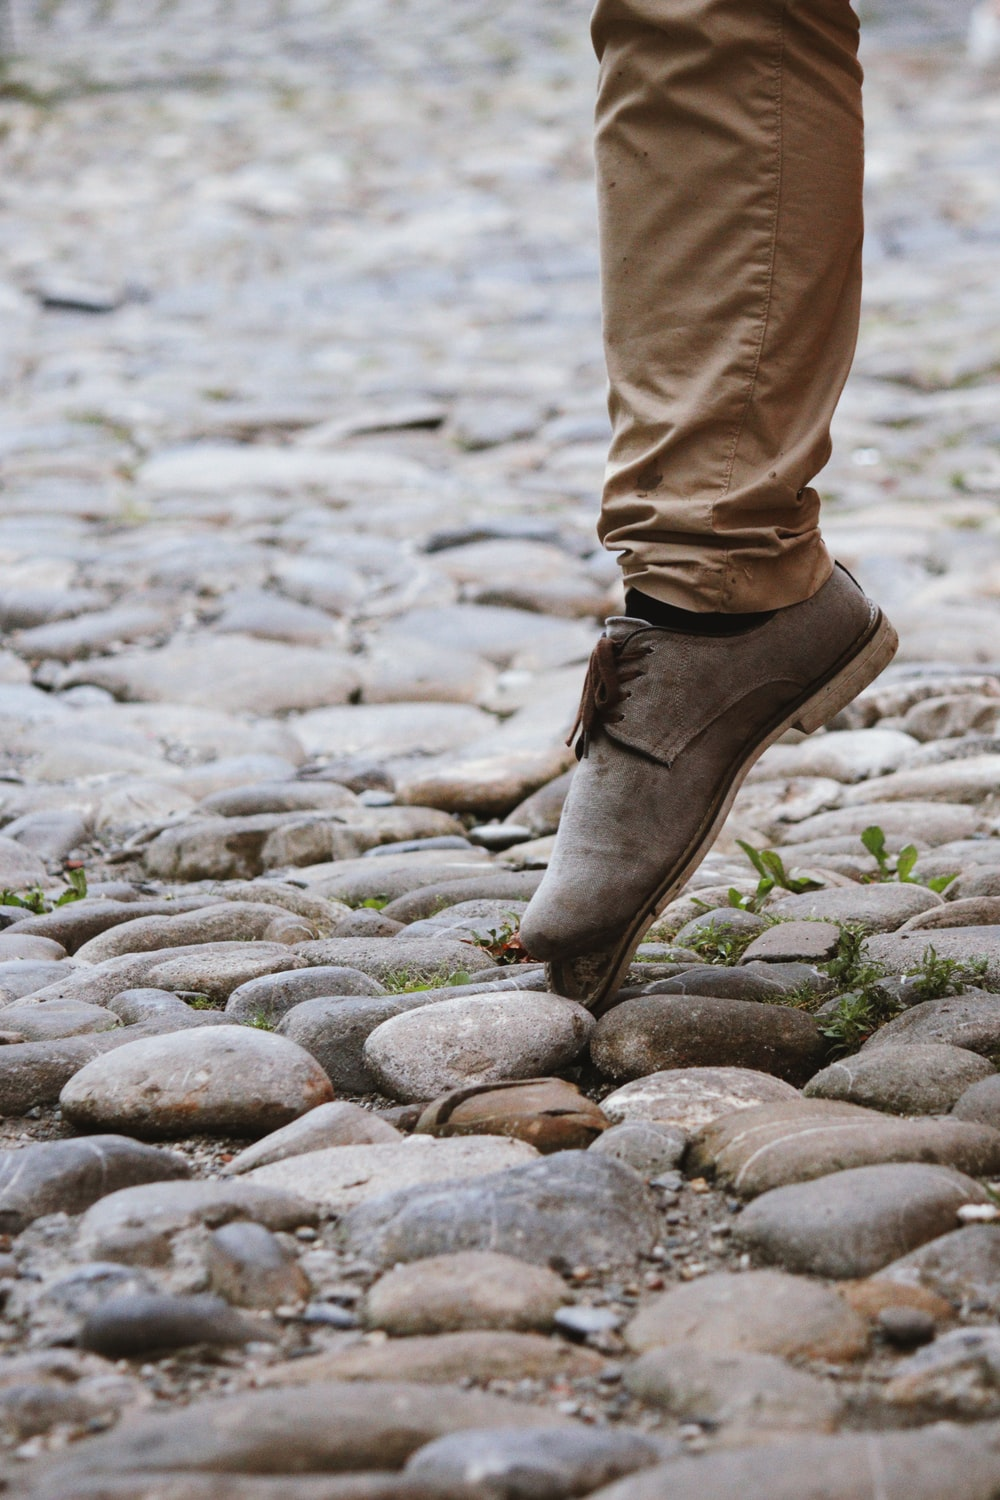 person in brown pants and brown boots standing on rocky ground during daytime